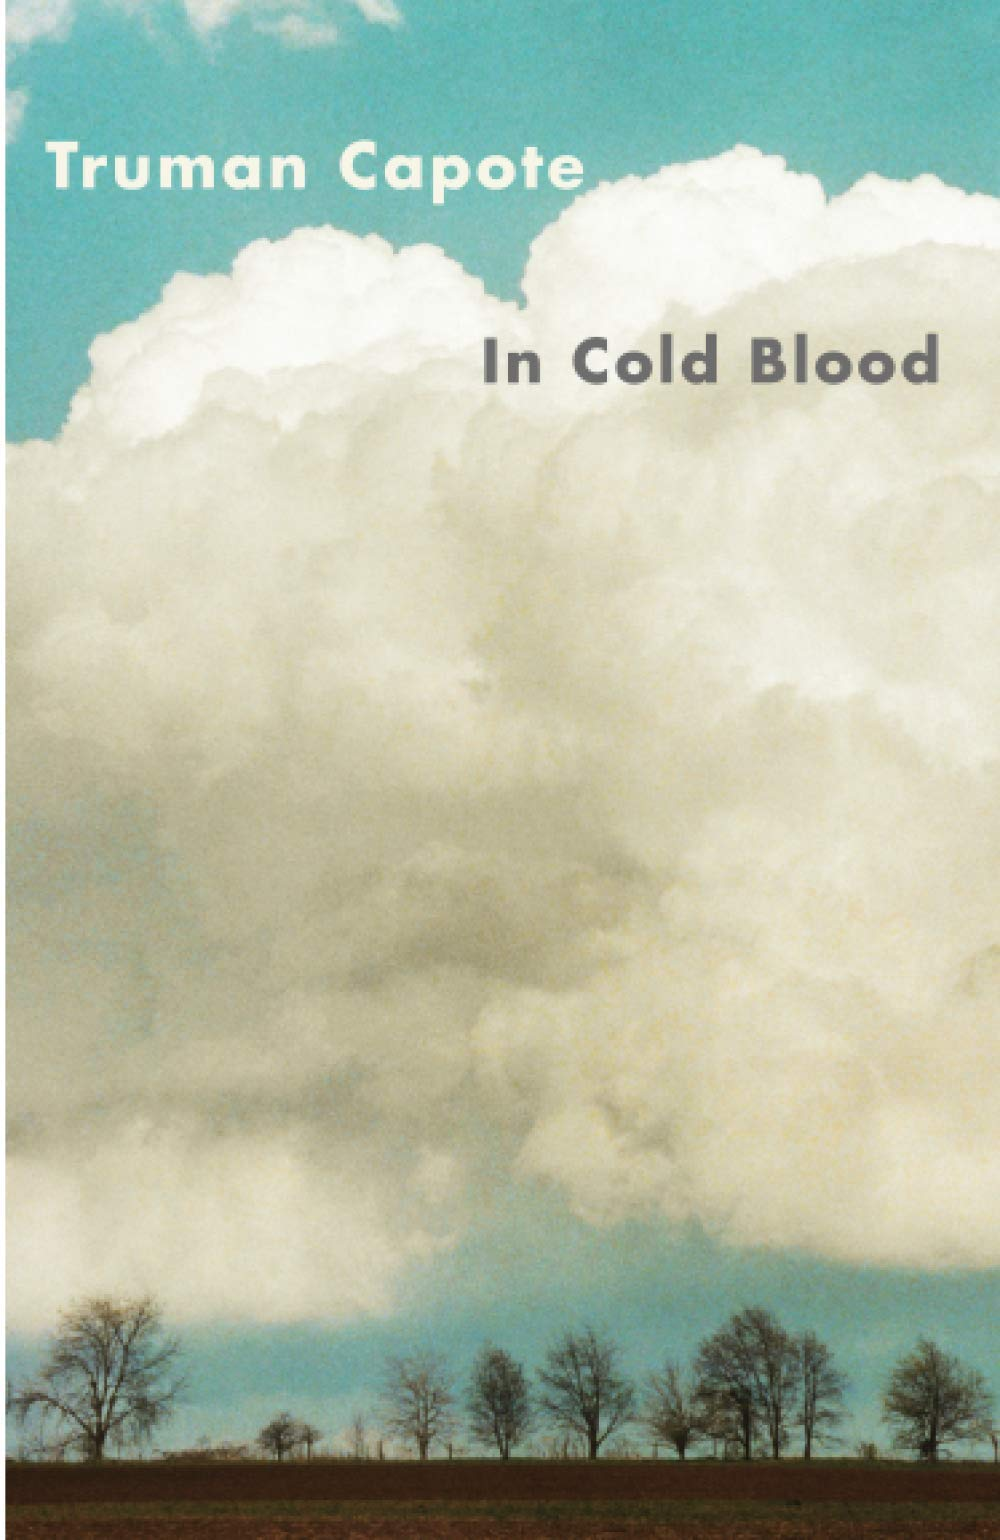 In Cold Blood couverture livre